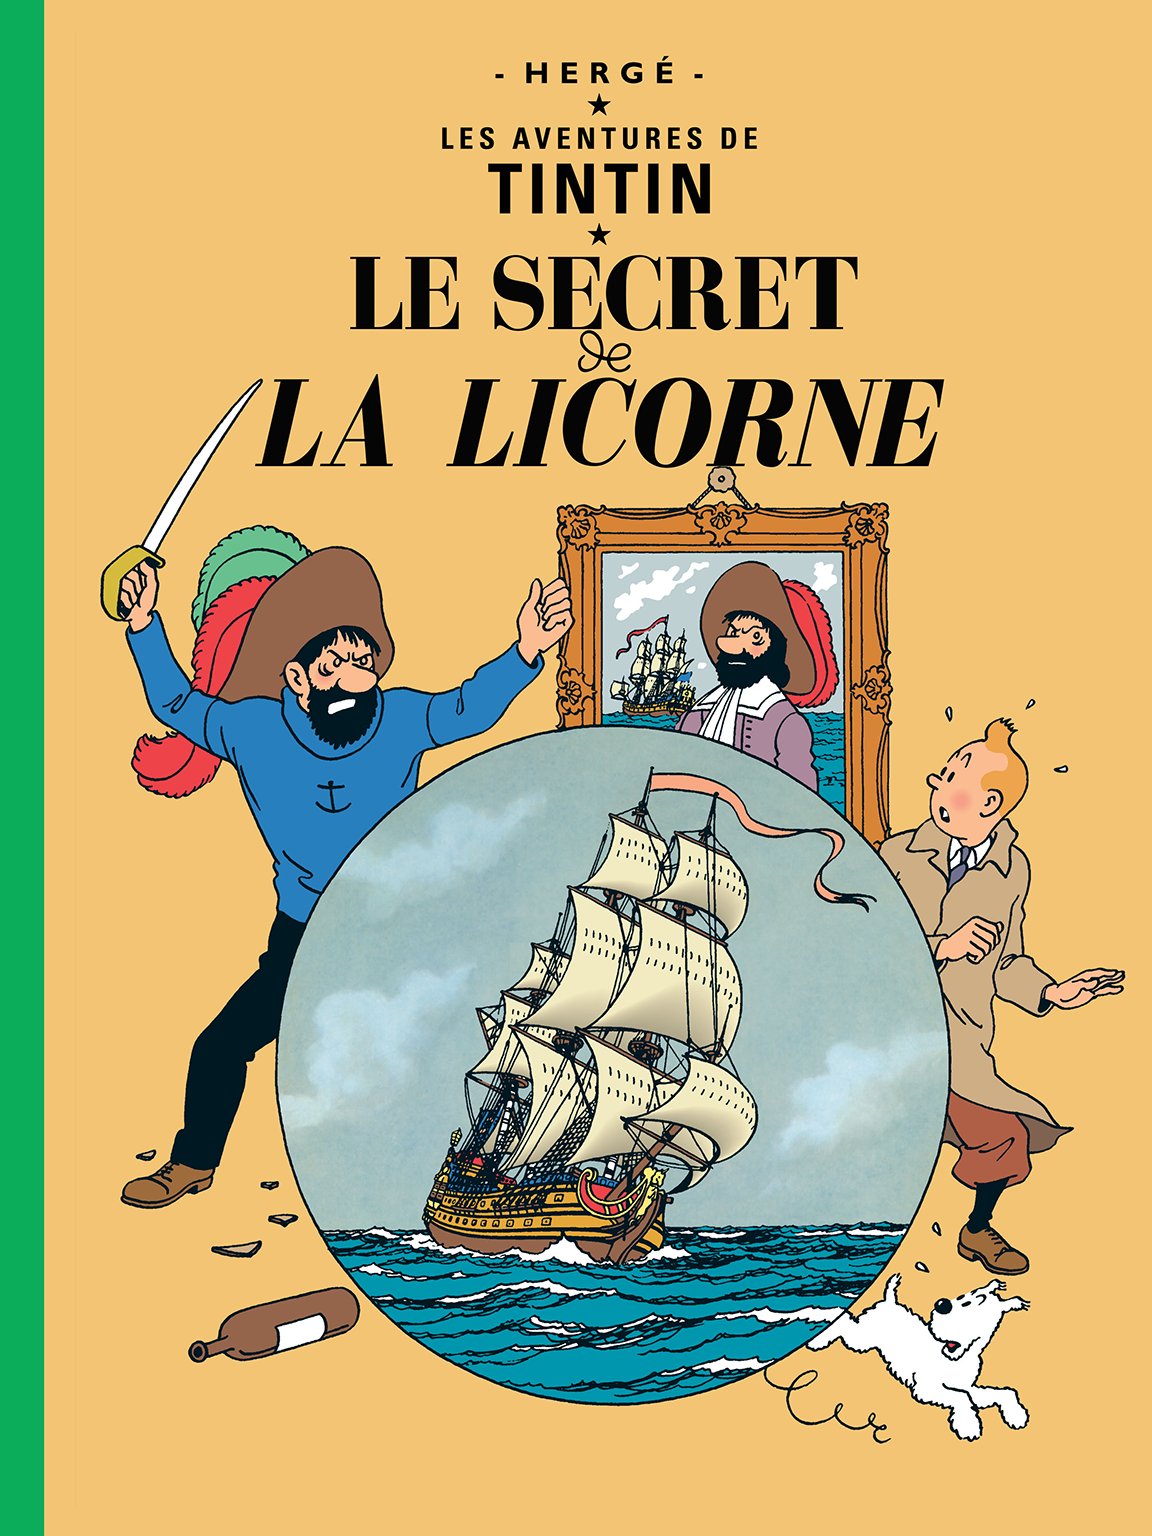 TINTIN The Secret of the Unicorn Hergé RG tintin.com